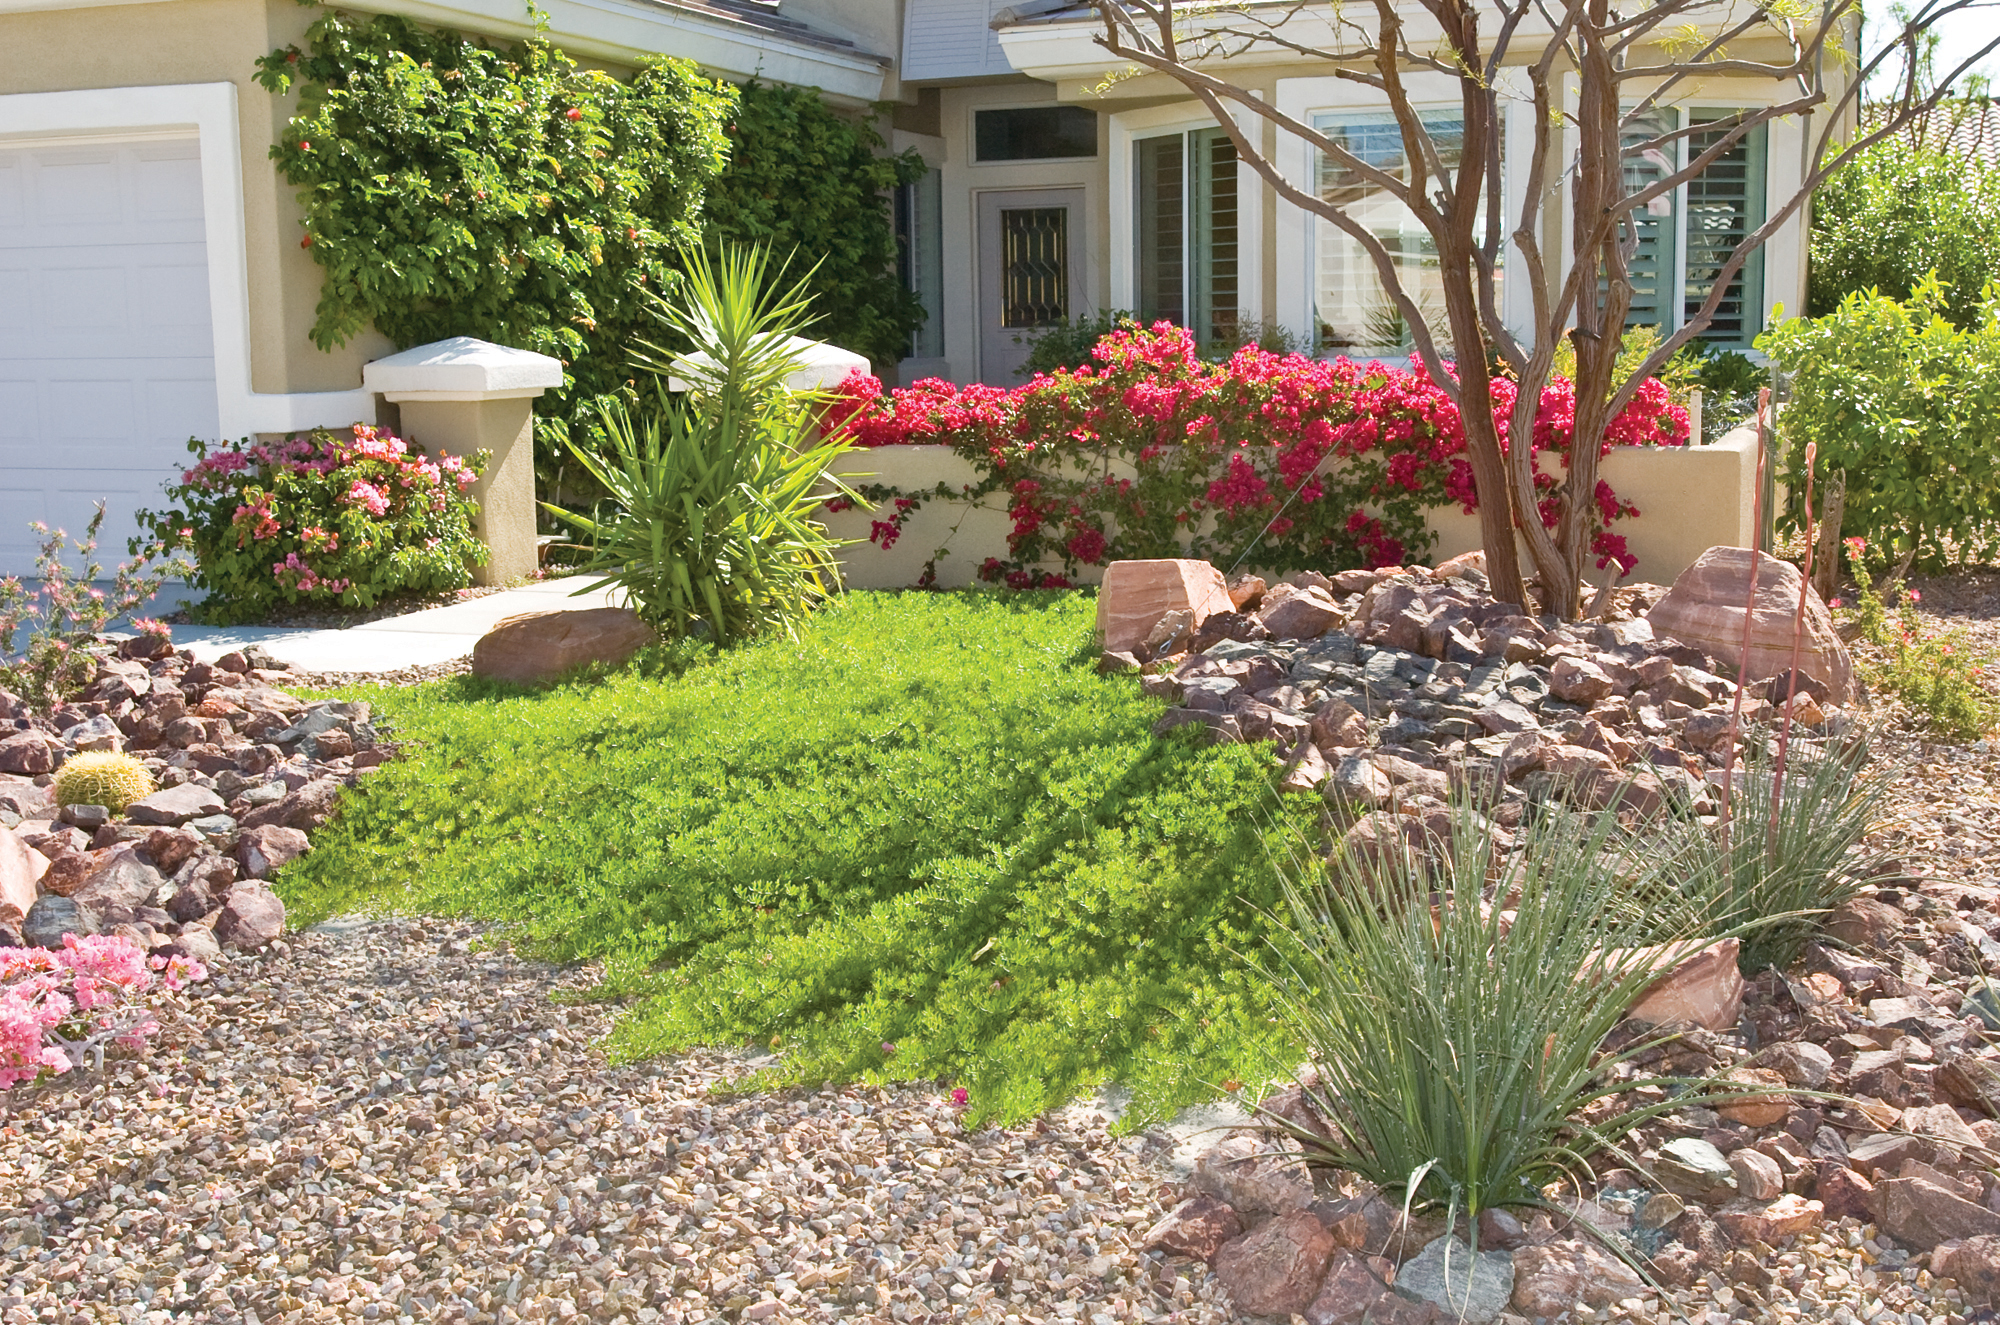 17 - Convert Your Front Lawn for Water Efficiency